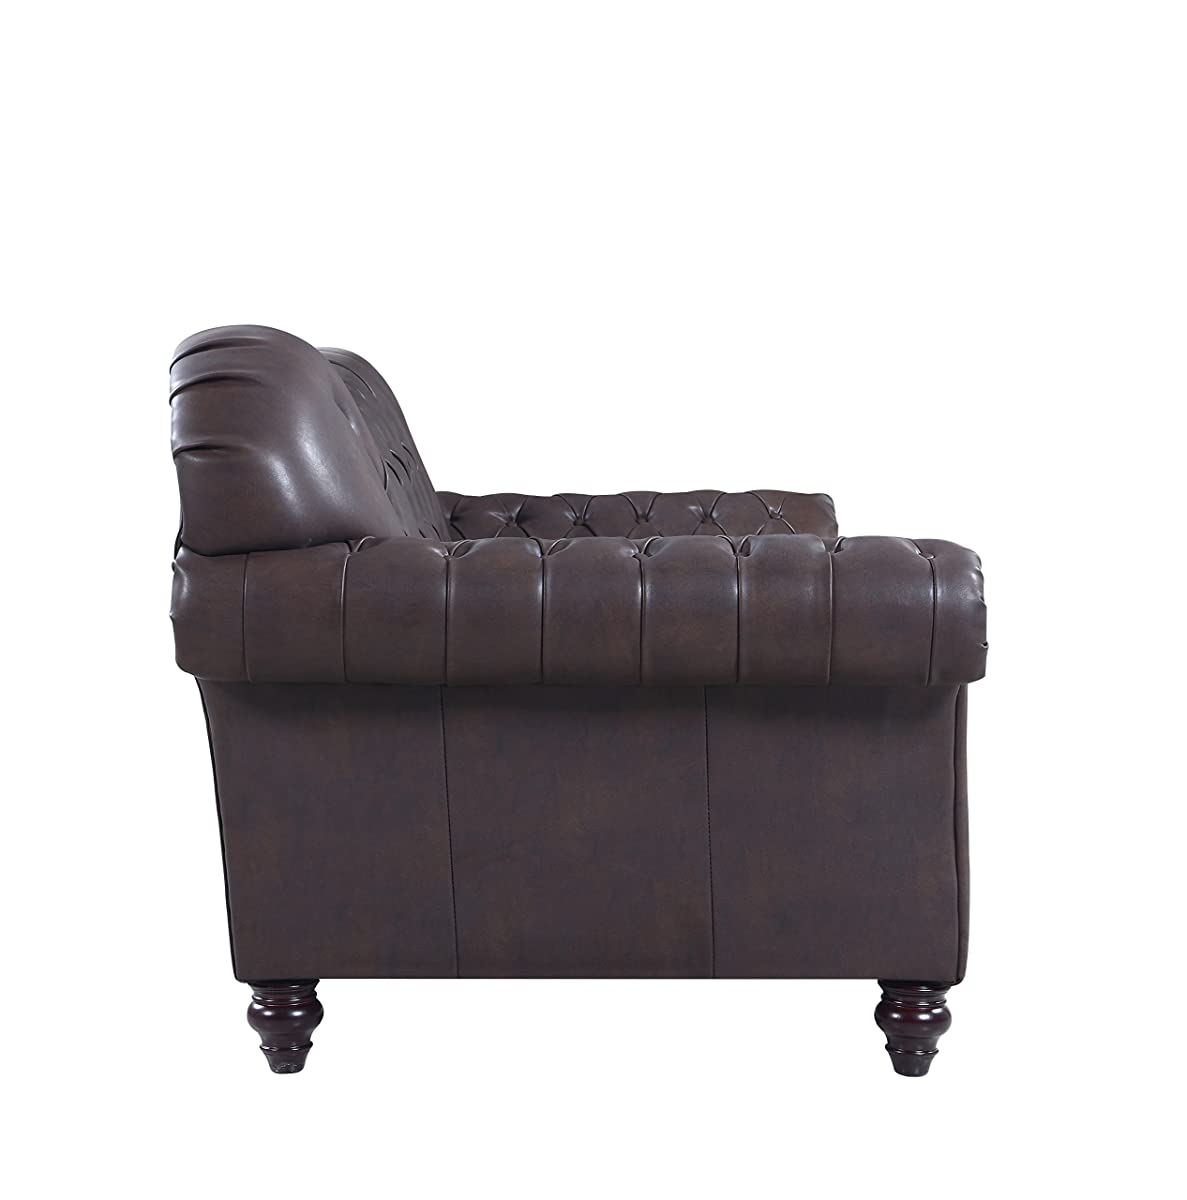 Divano Roma Furniture Classic Tufted Real Italian Leather Tufted Victorian Sofa - Real Italian Leather (Dark brown)